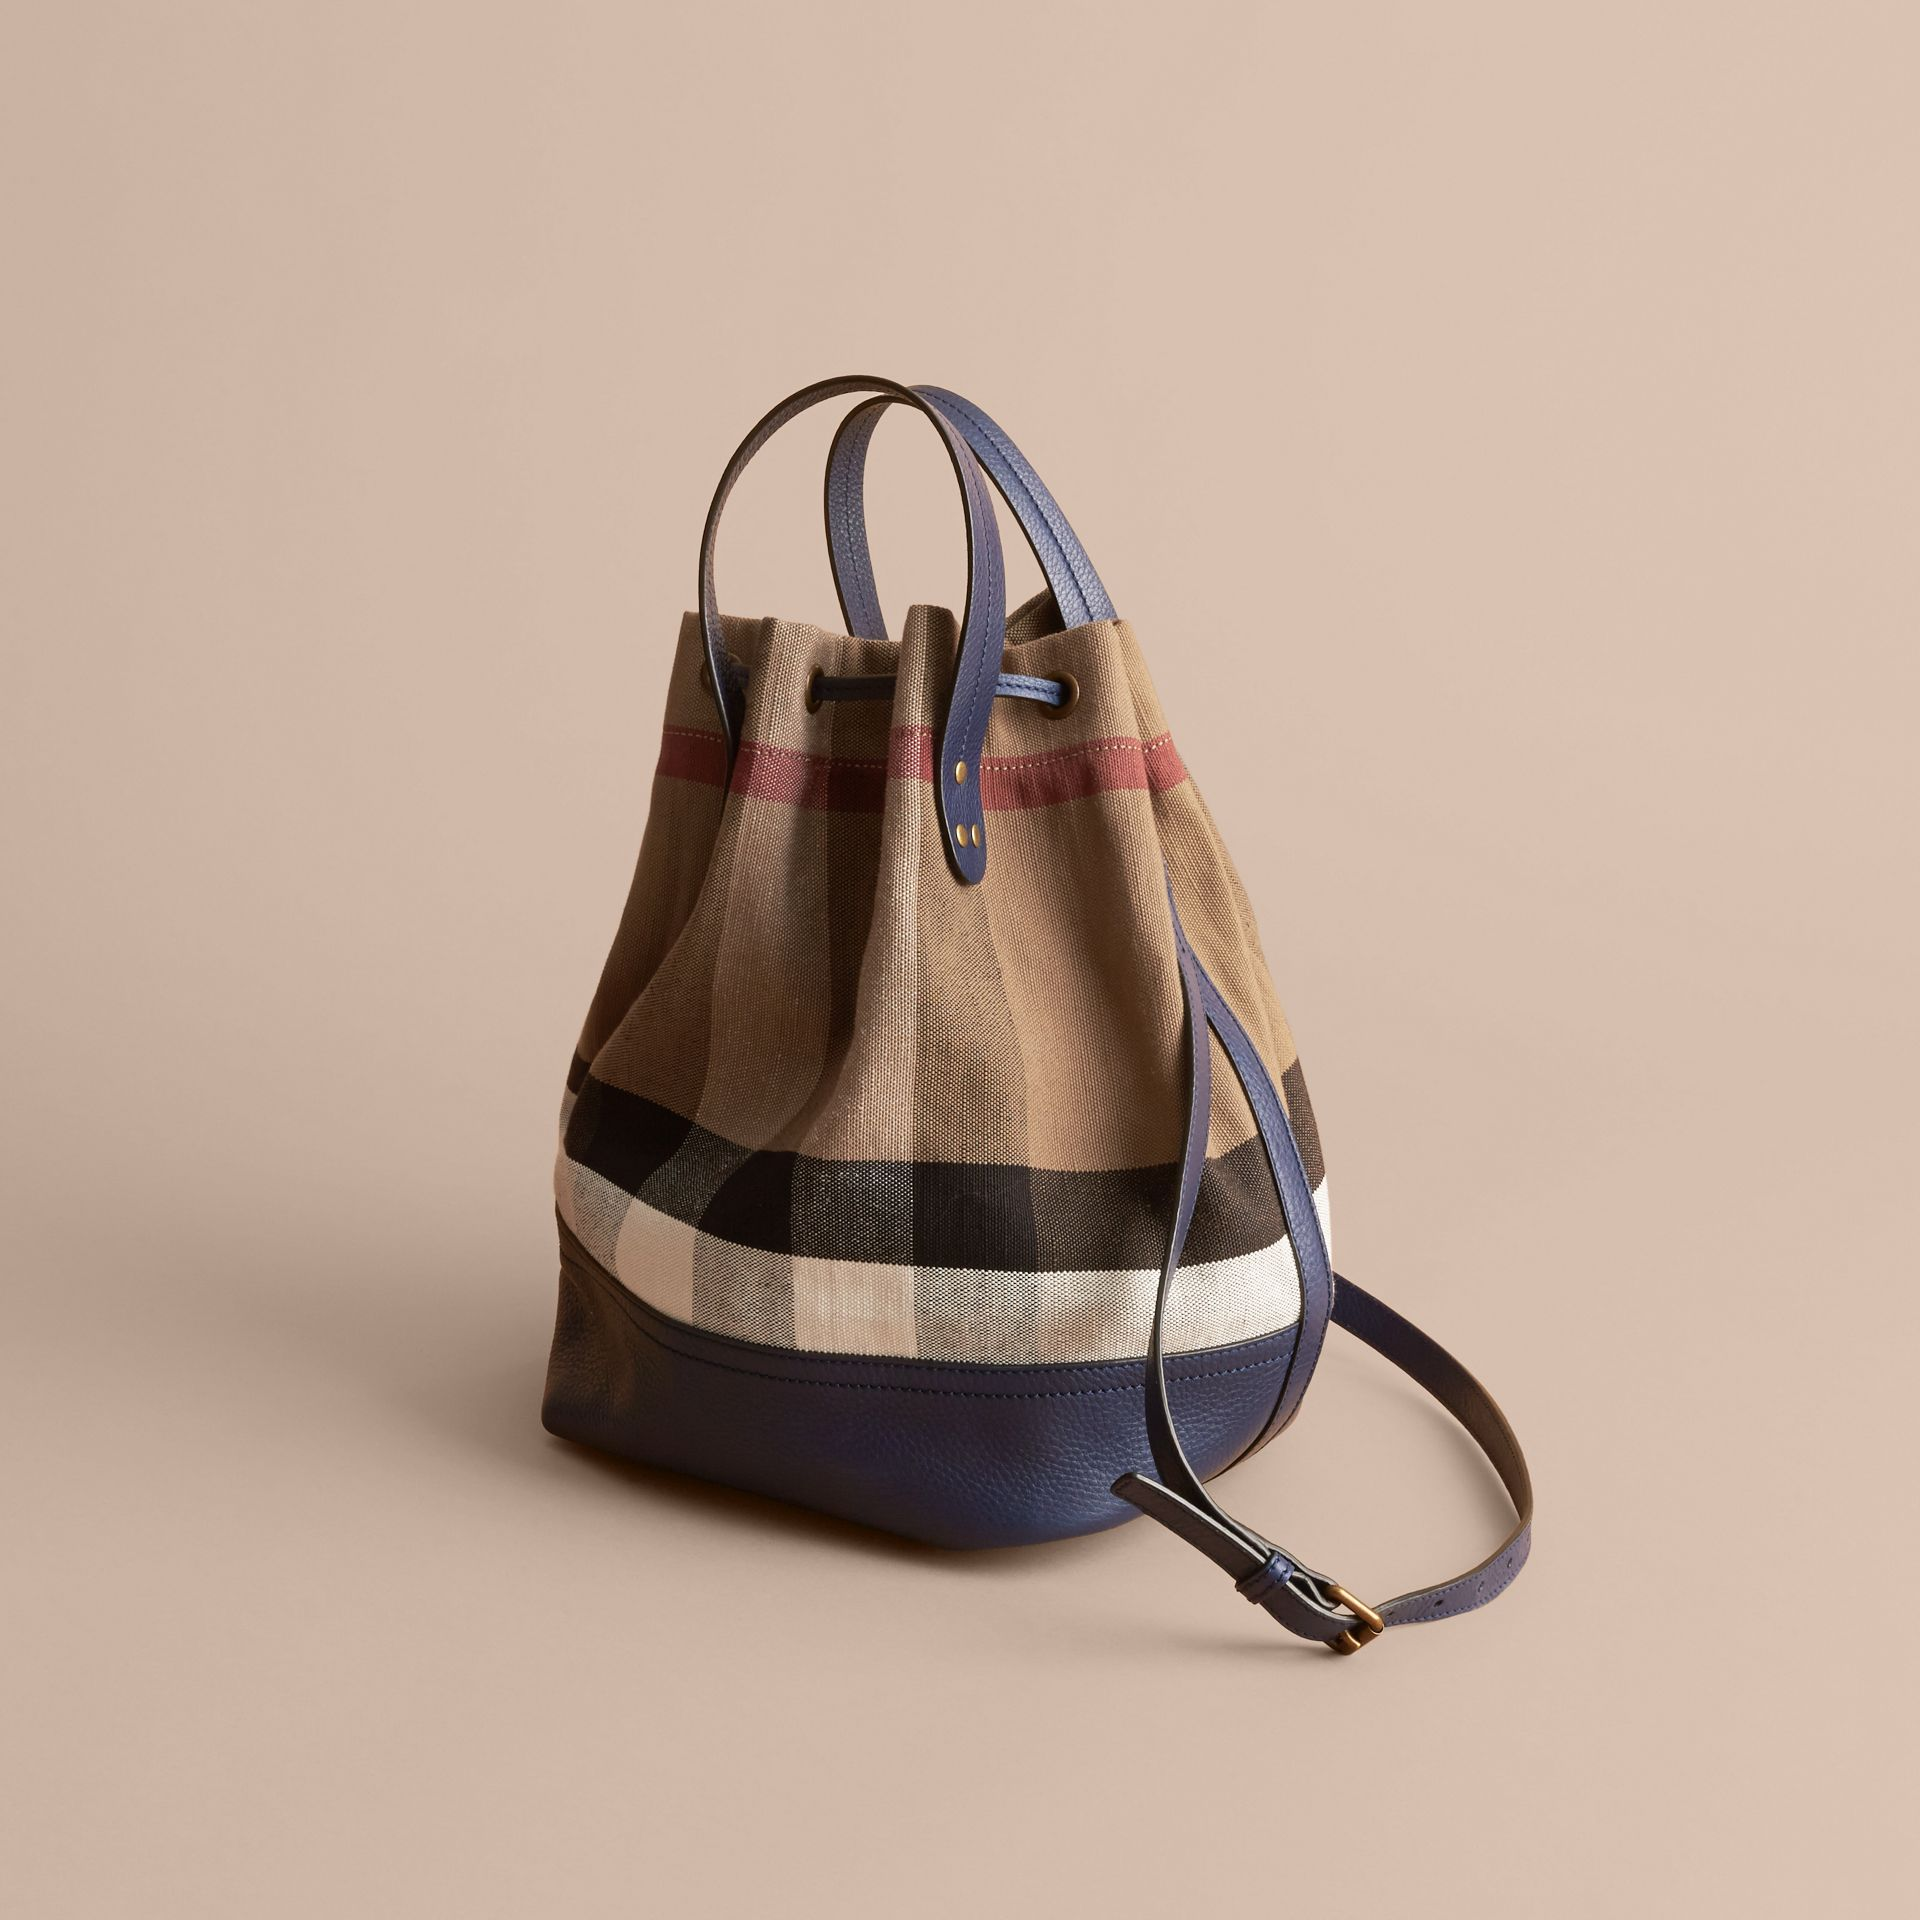 Medium Canvas Check and Leather Bucket Bag in Brilliant Navy - Women | Burberry - gallery image 5